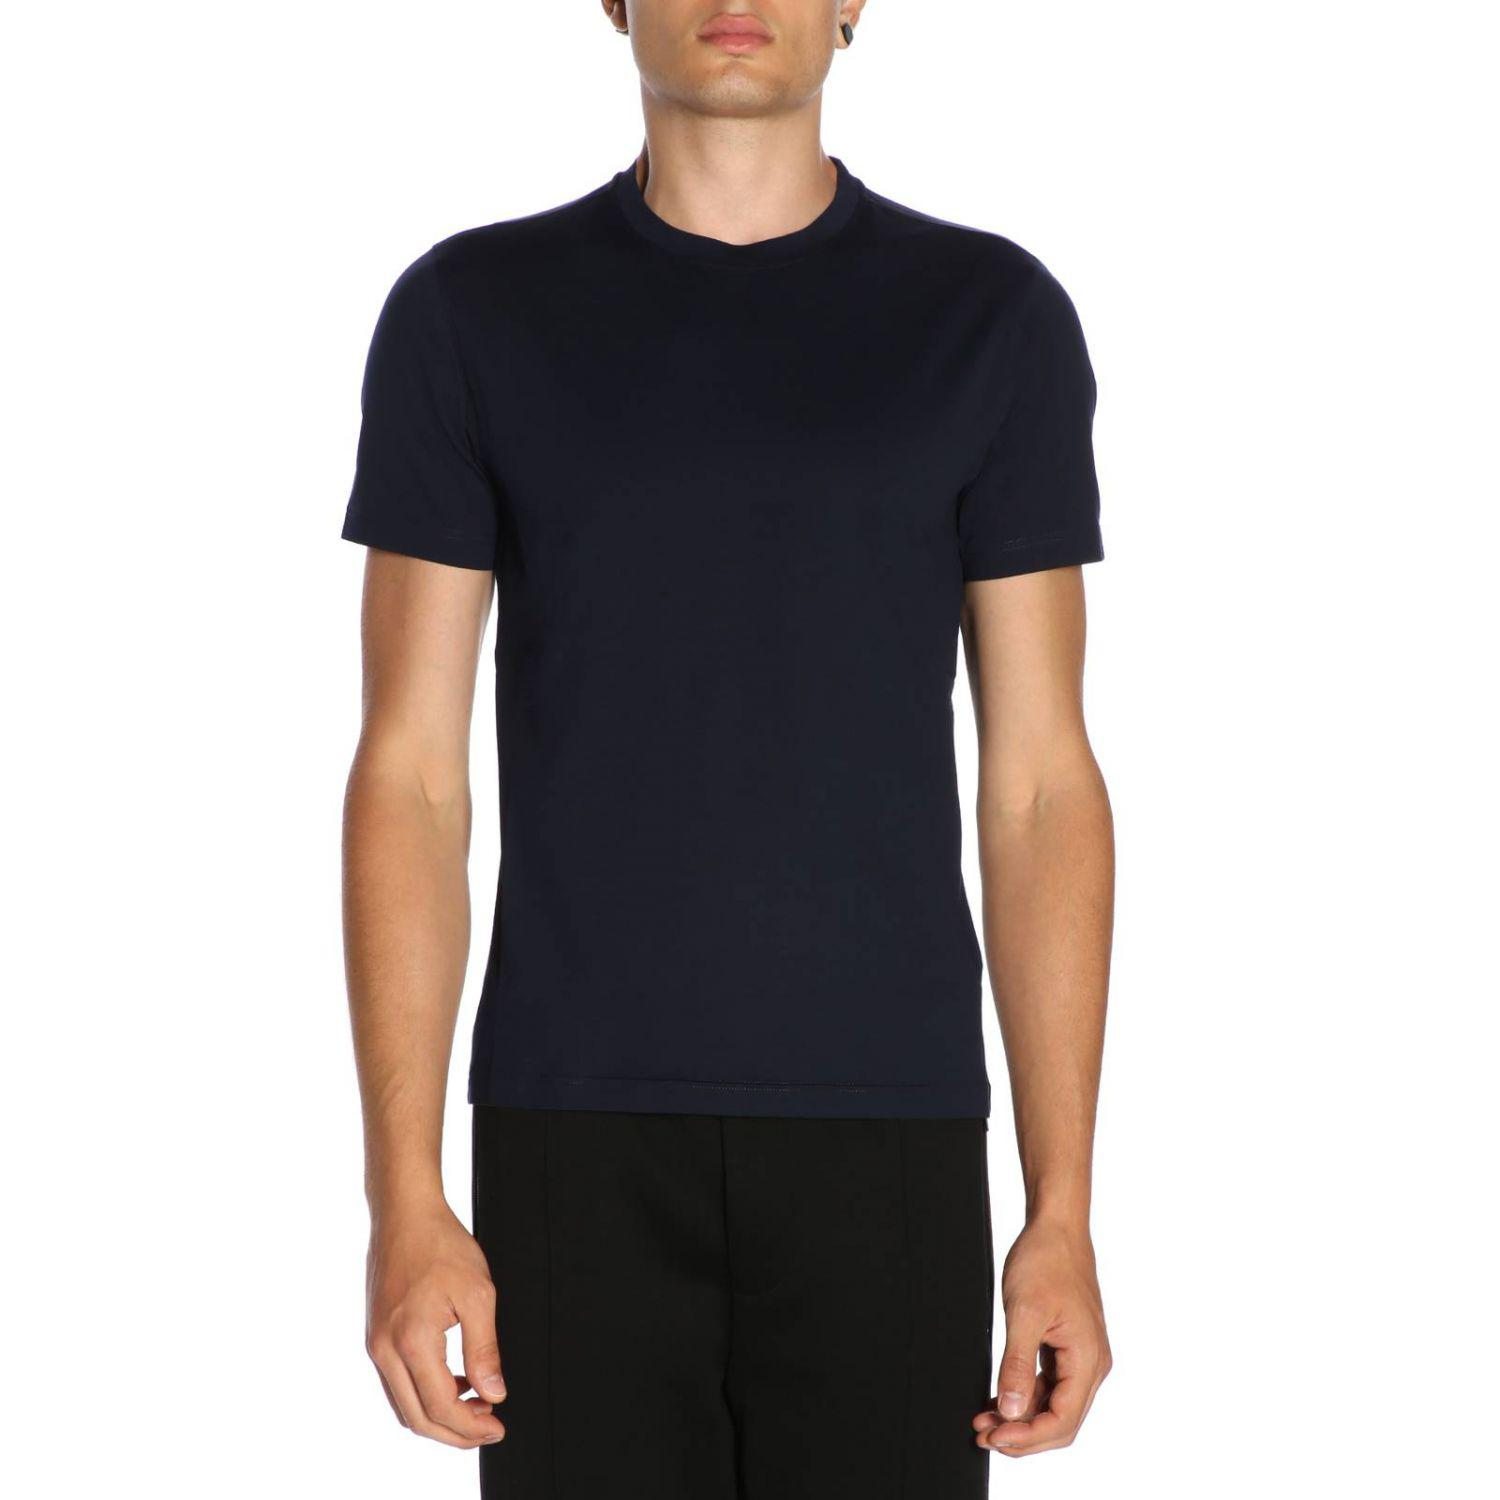 34ebbac6b69e Lyst - Prada T-shirt Men in Blue for Men